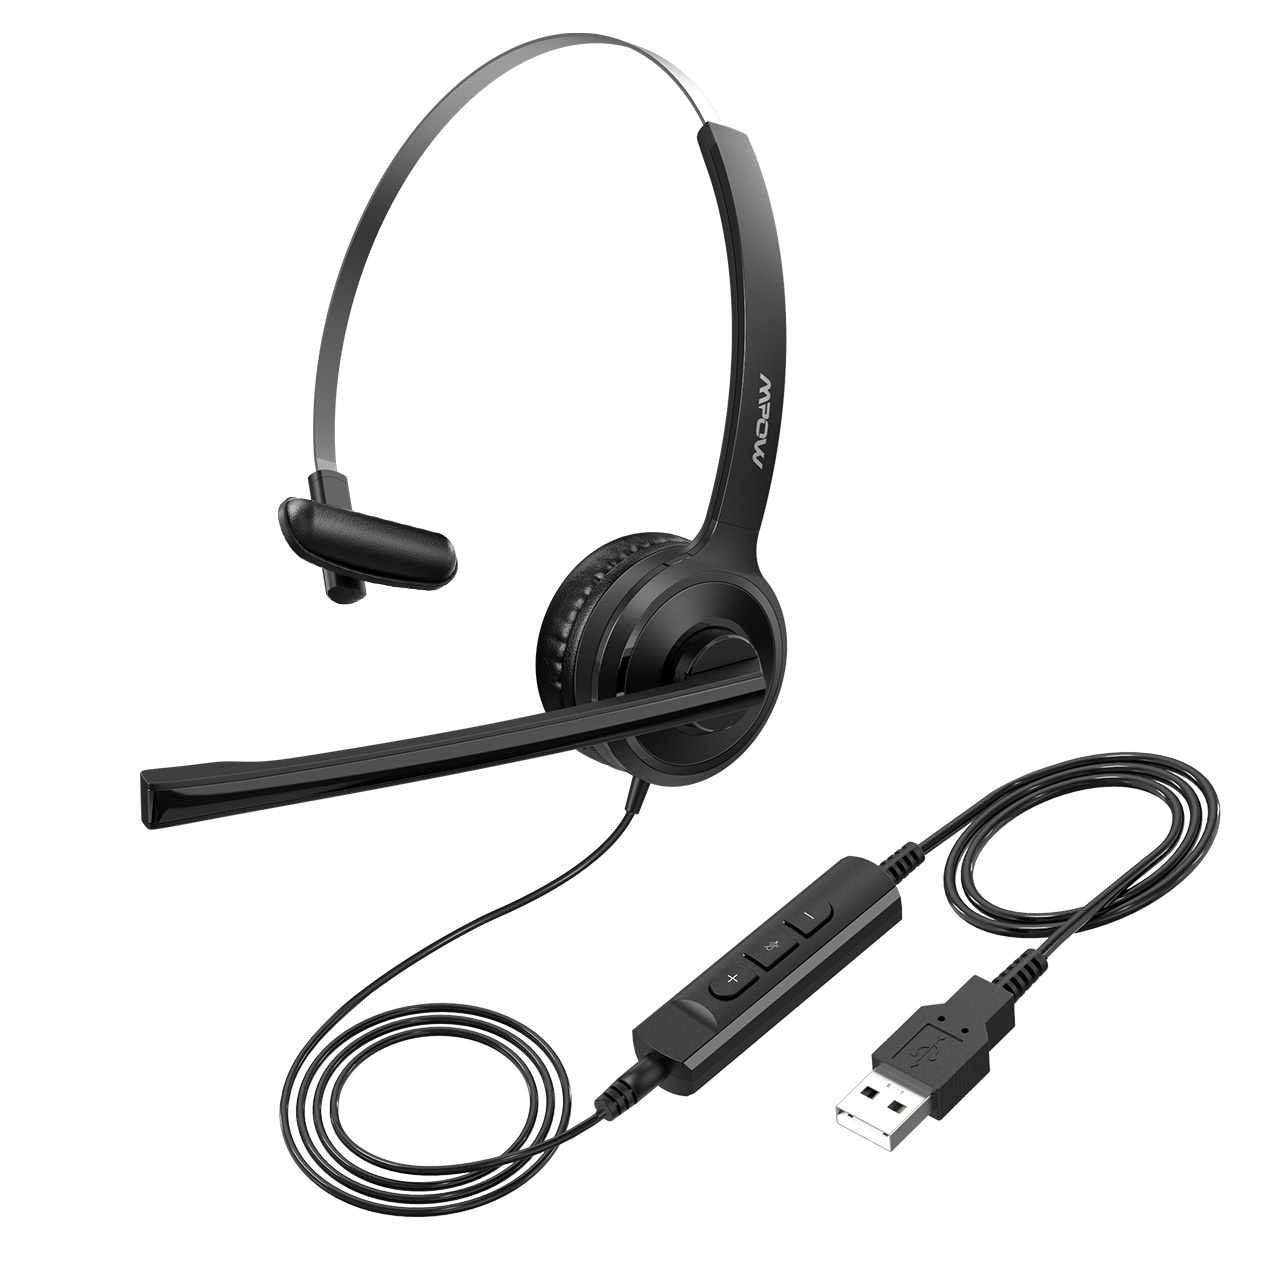 Shop Mpow Usb Headset Stereo Computer Headset With Noise Cancelling Mic Wired Headphones For Conference Laptop Tablets Overstock 29815849